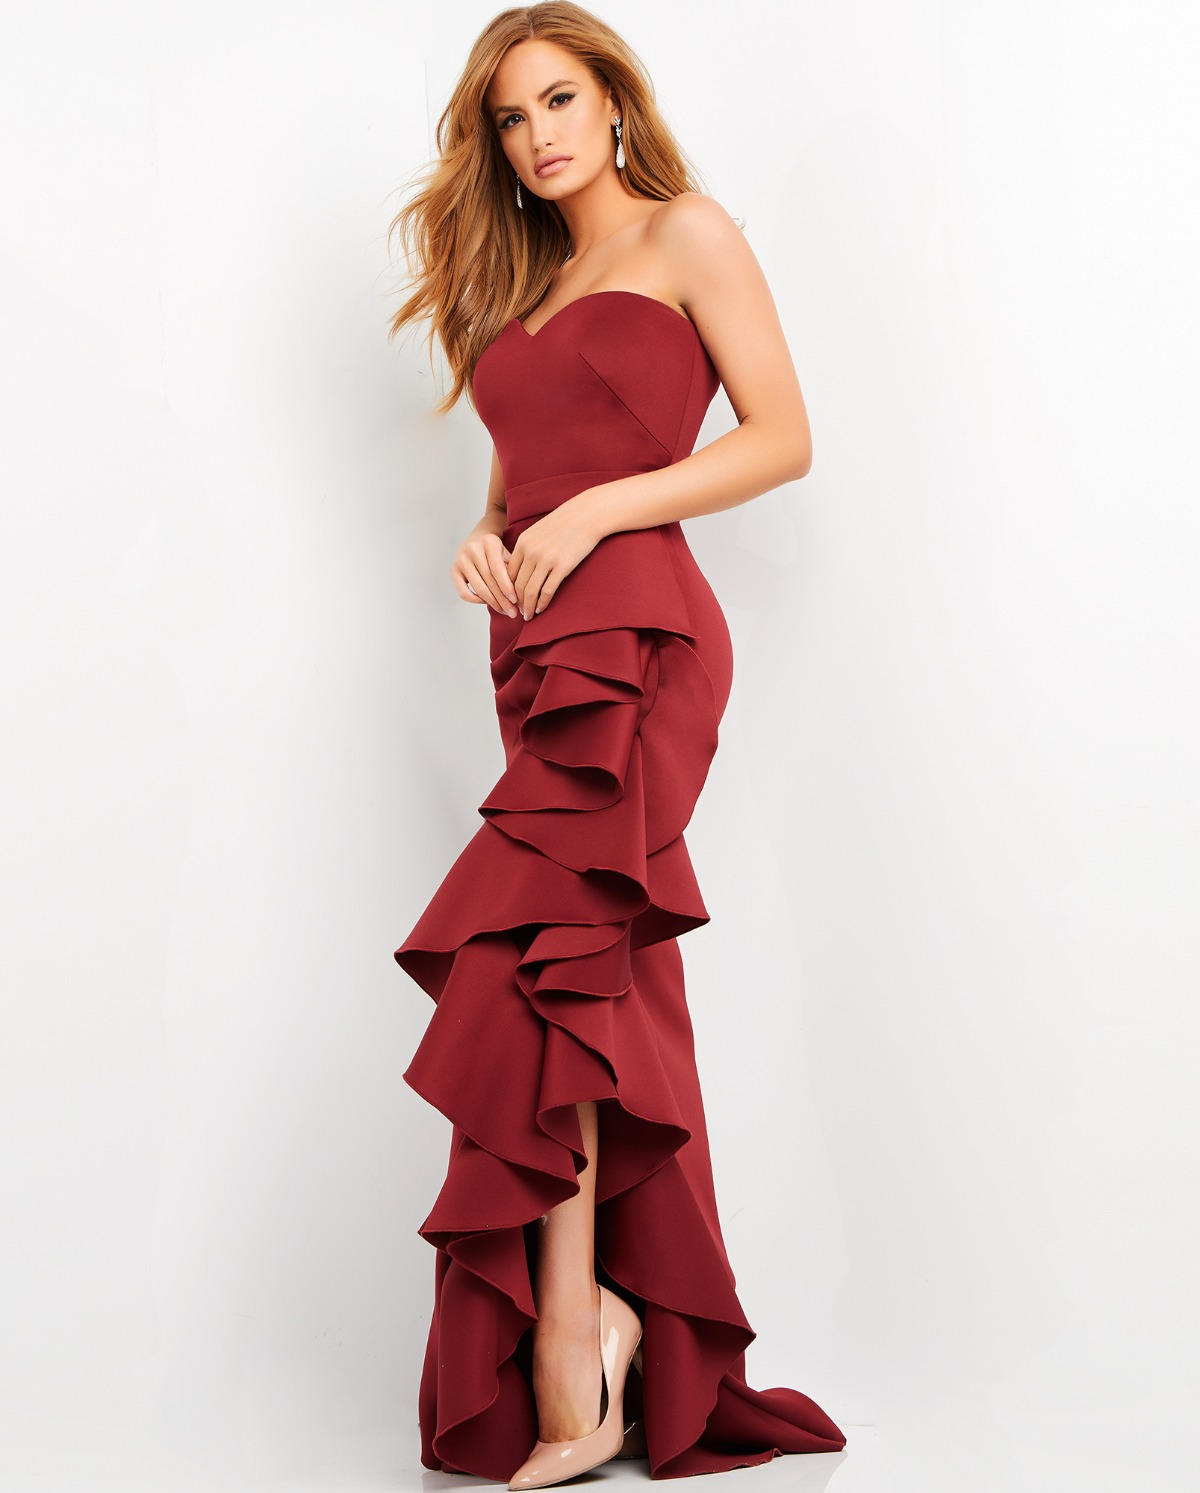 Classy Mother of the Bride Dresses Perfect for your Daughter's Wedding